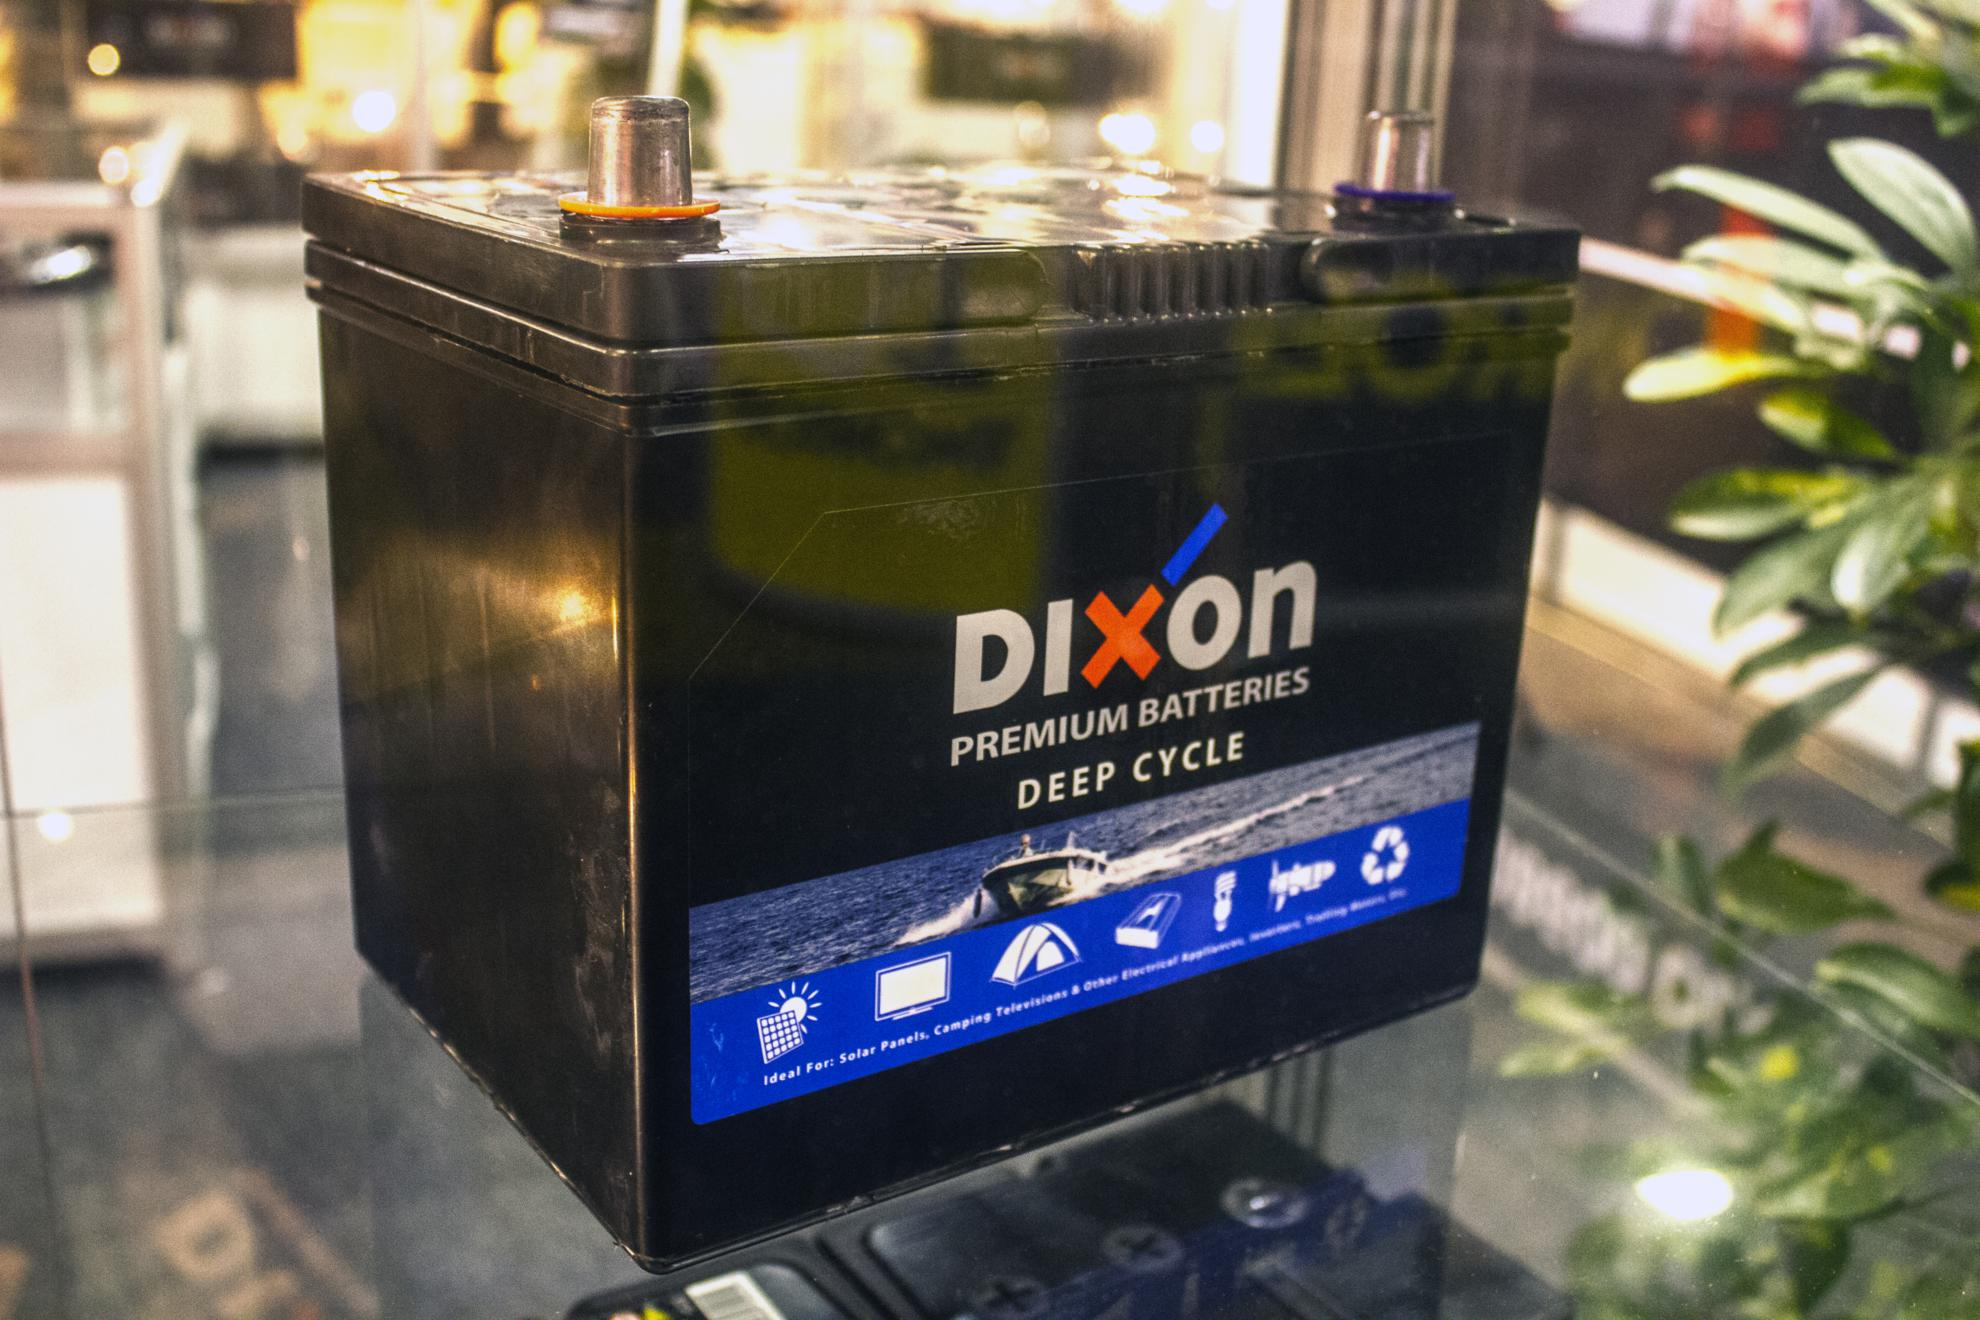 Dixon-Batteries-Deep-Cycle